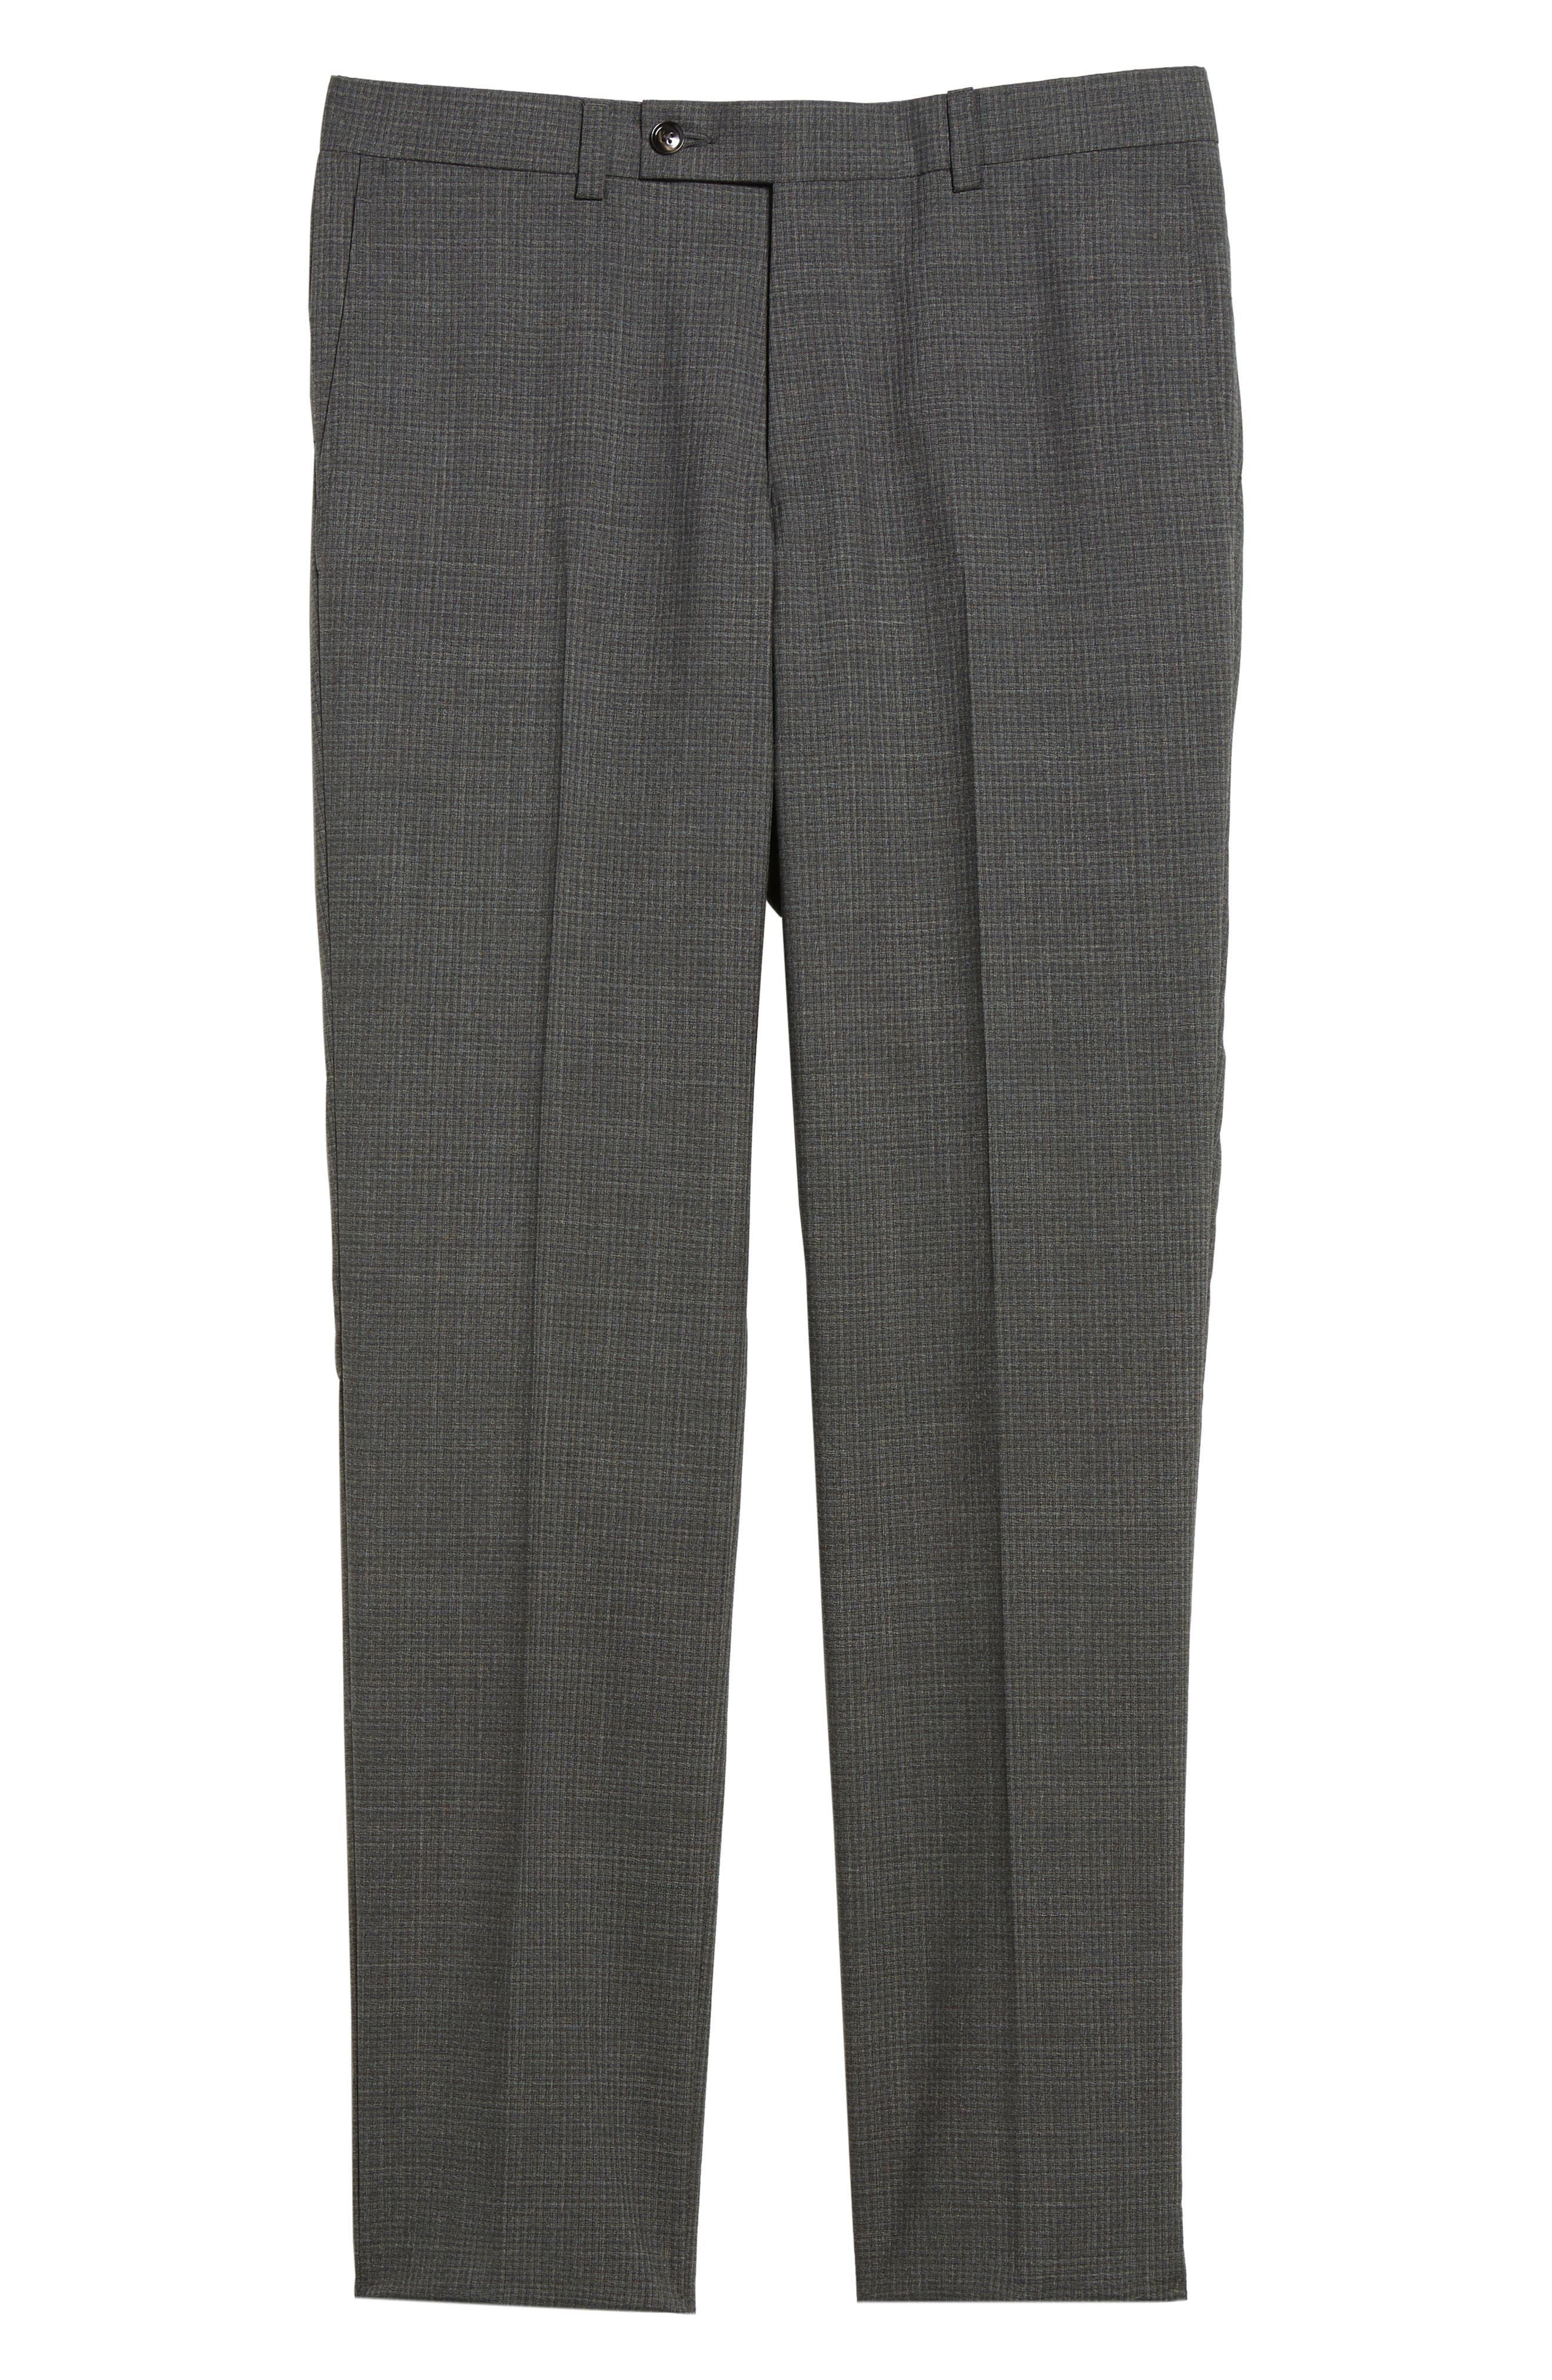 Flat Front Check Wool Trousers,                             Alternate thumbnail 6, color,                             Grey